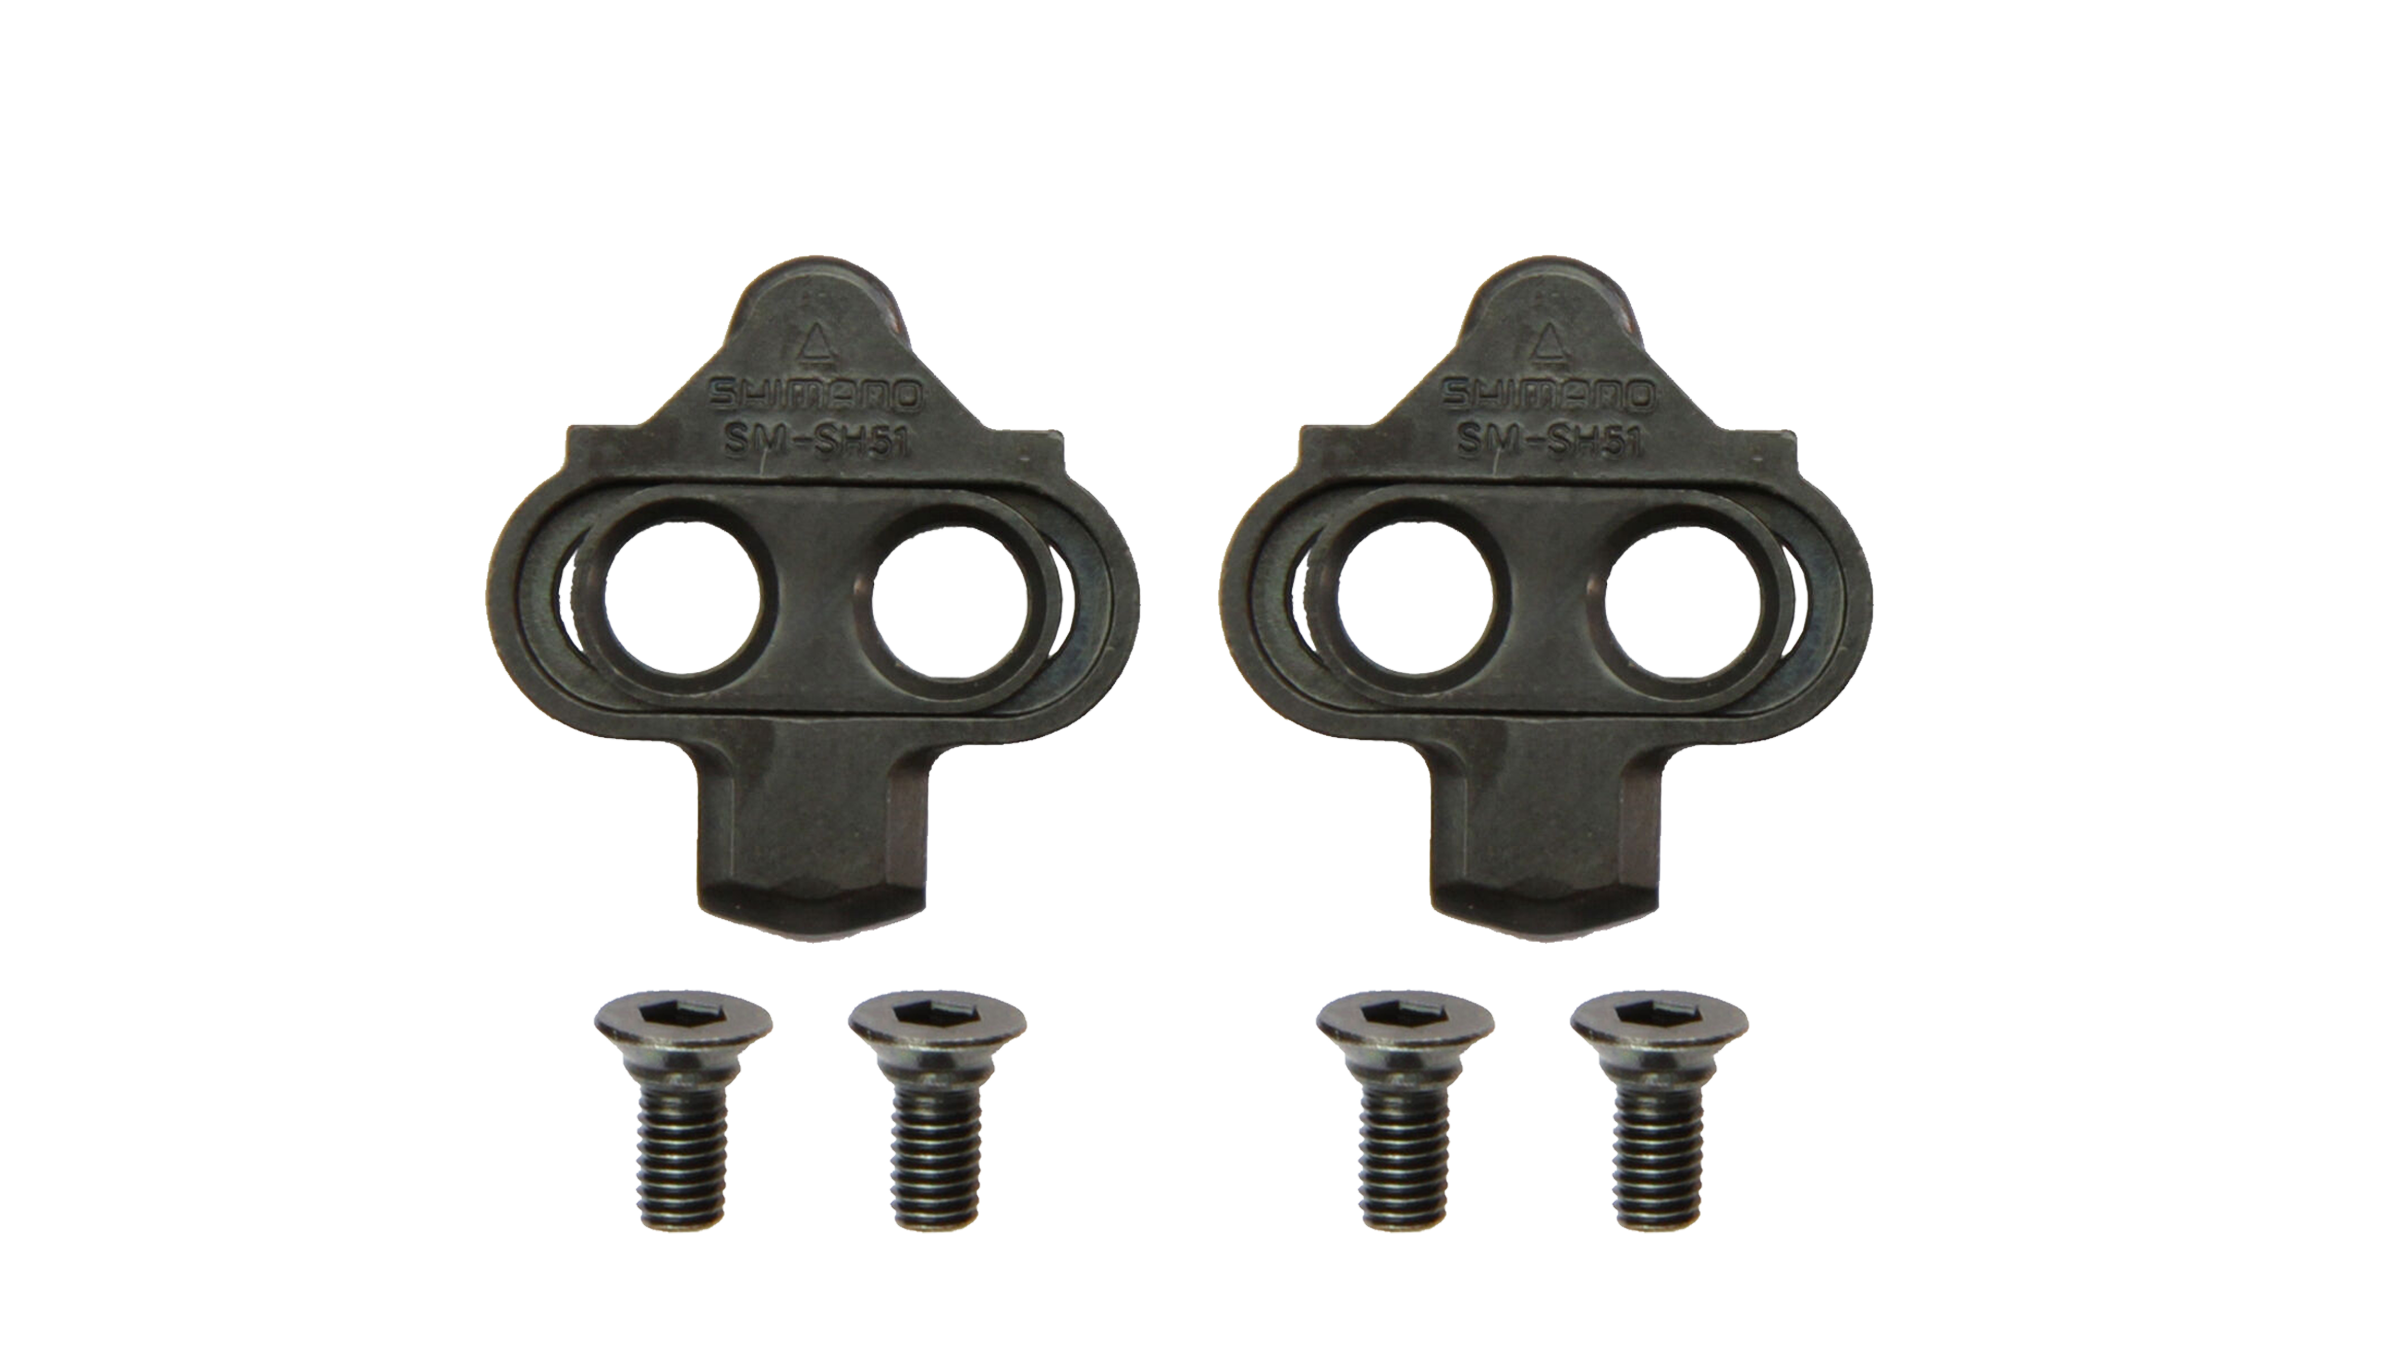 Shimano SM-SH51 Cleats (without cleat plates) | Pedal cleats